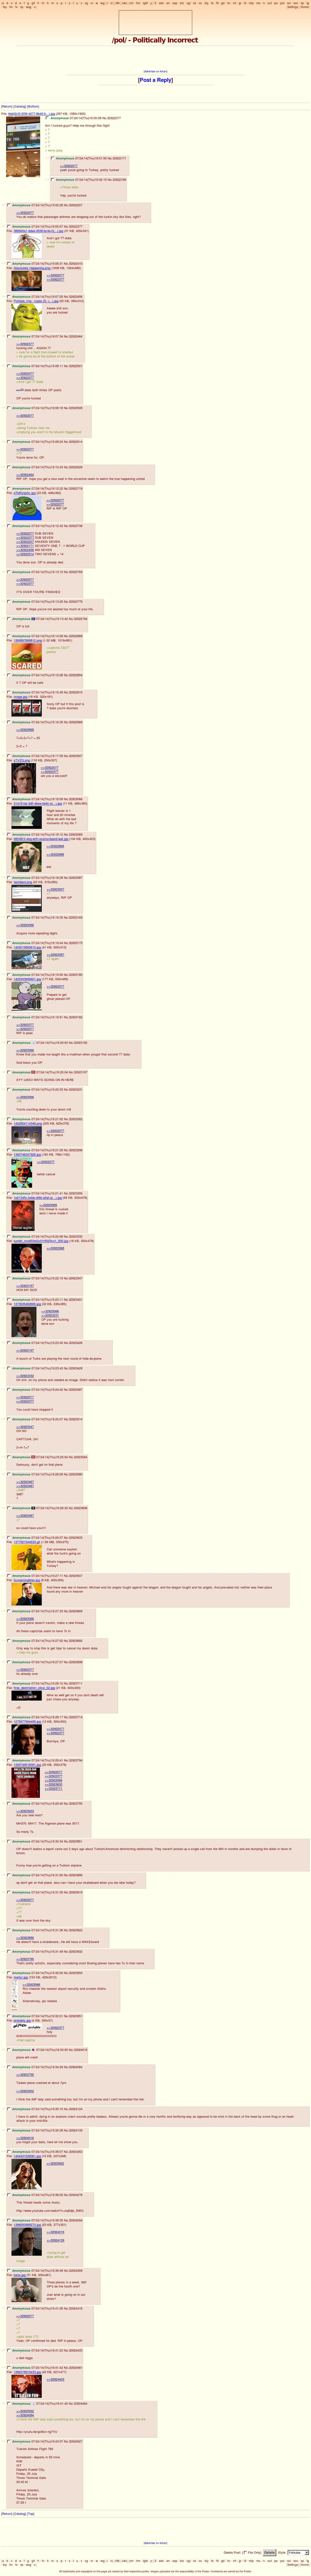 RIP anon. itshappening.jpg tfw no one on funnyjunk will posses such glorious dubs Edit: . waan wore boll - Politically Incorrect Post I Hem] warn peg ya... yam